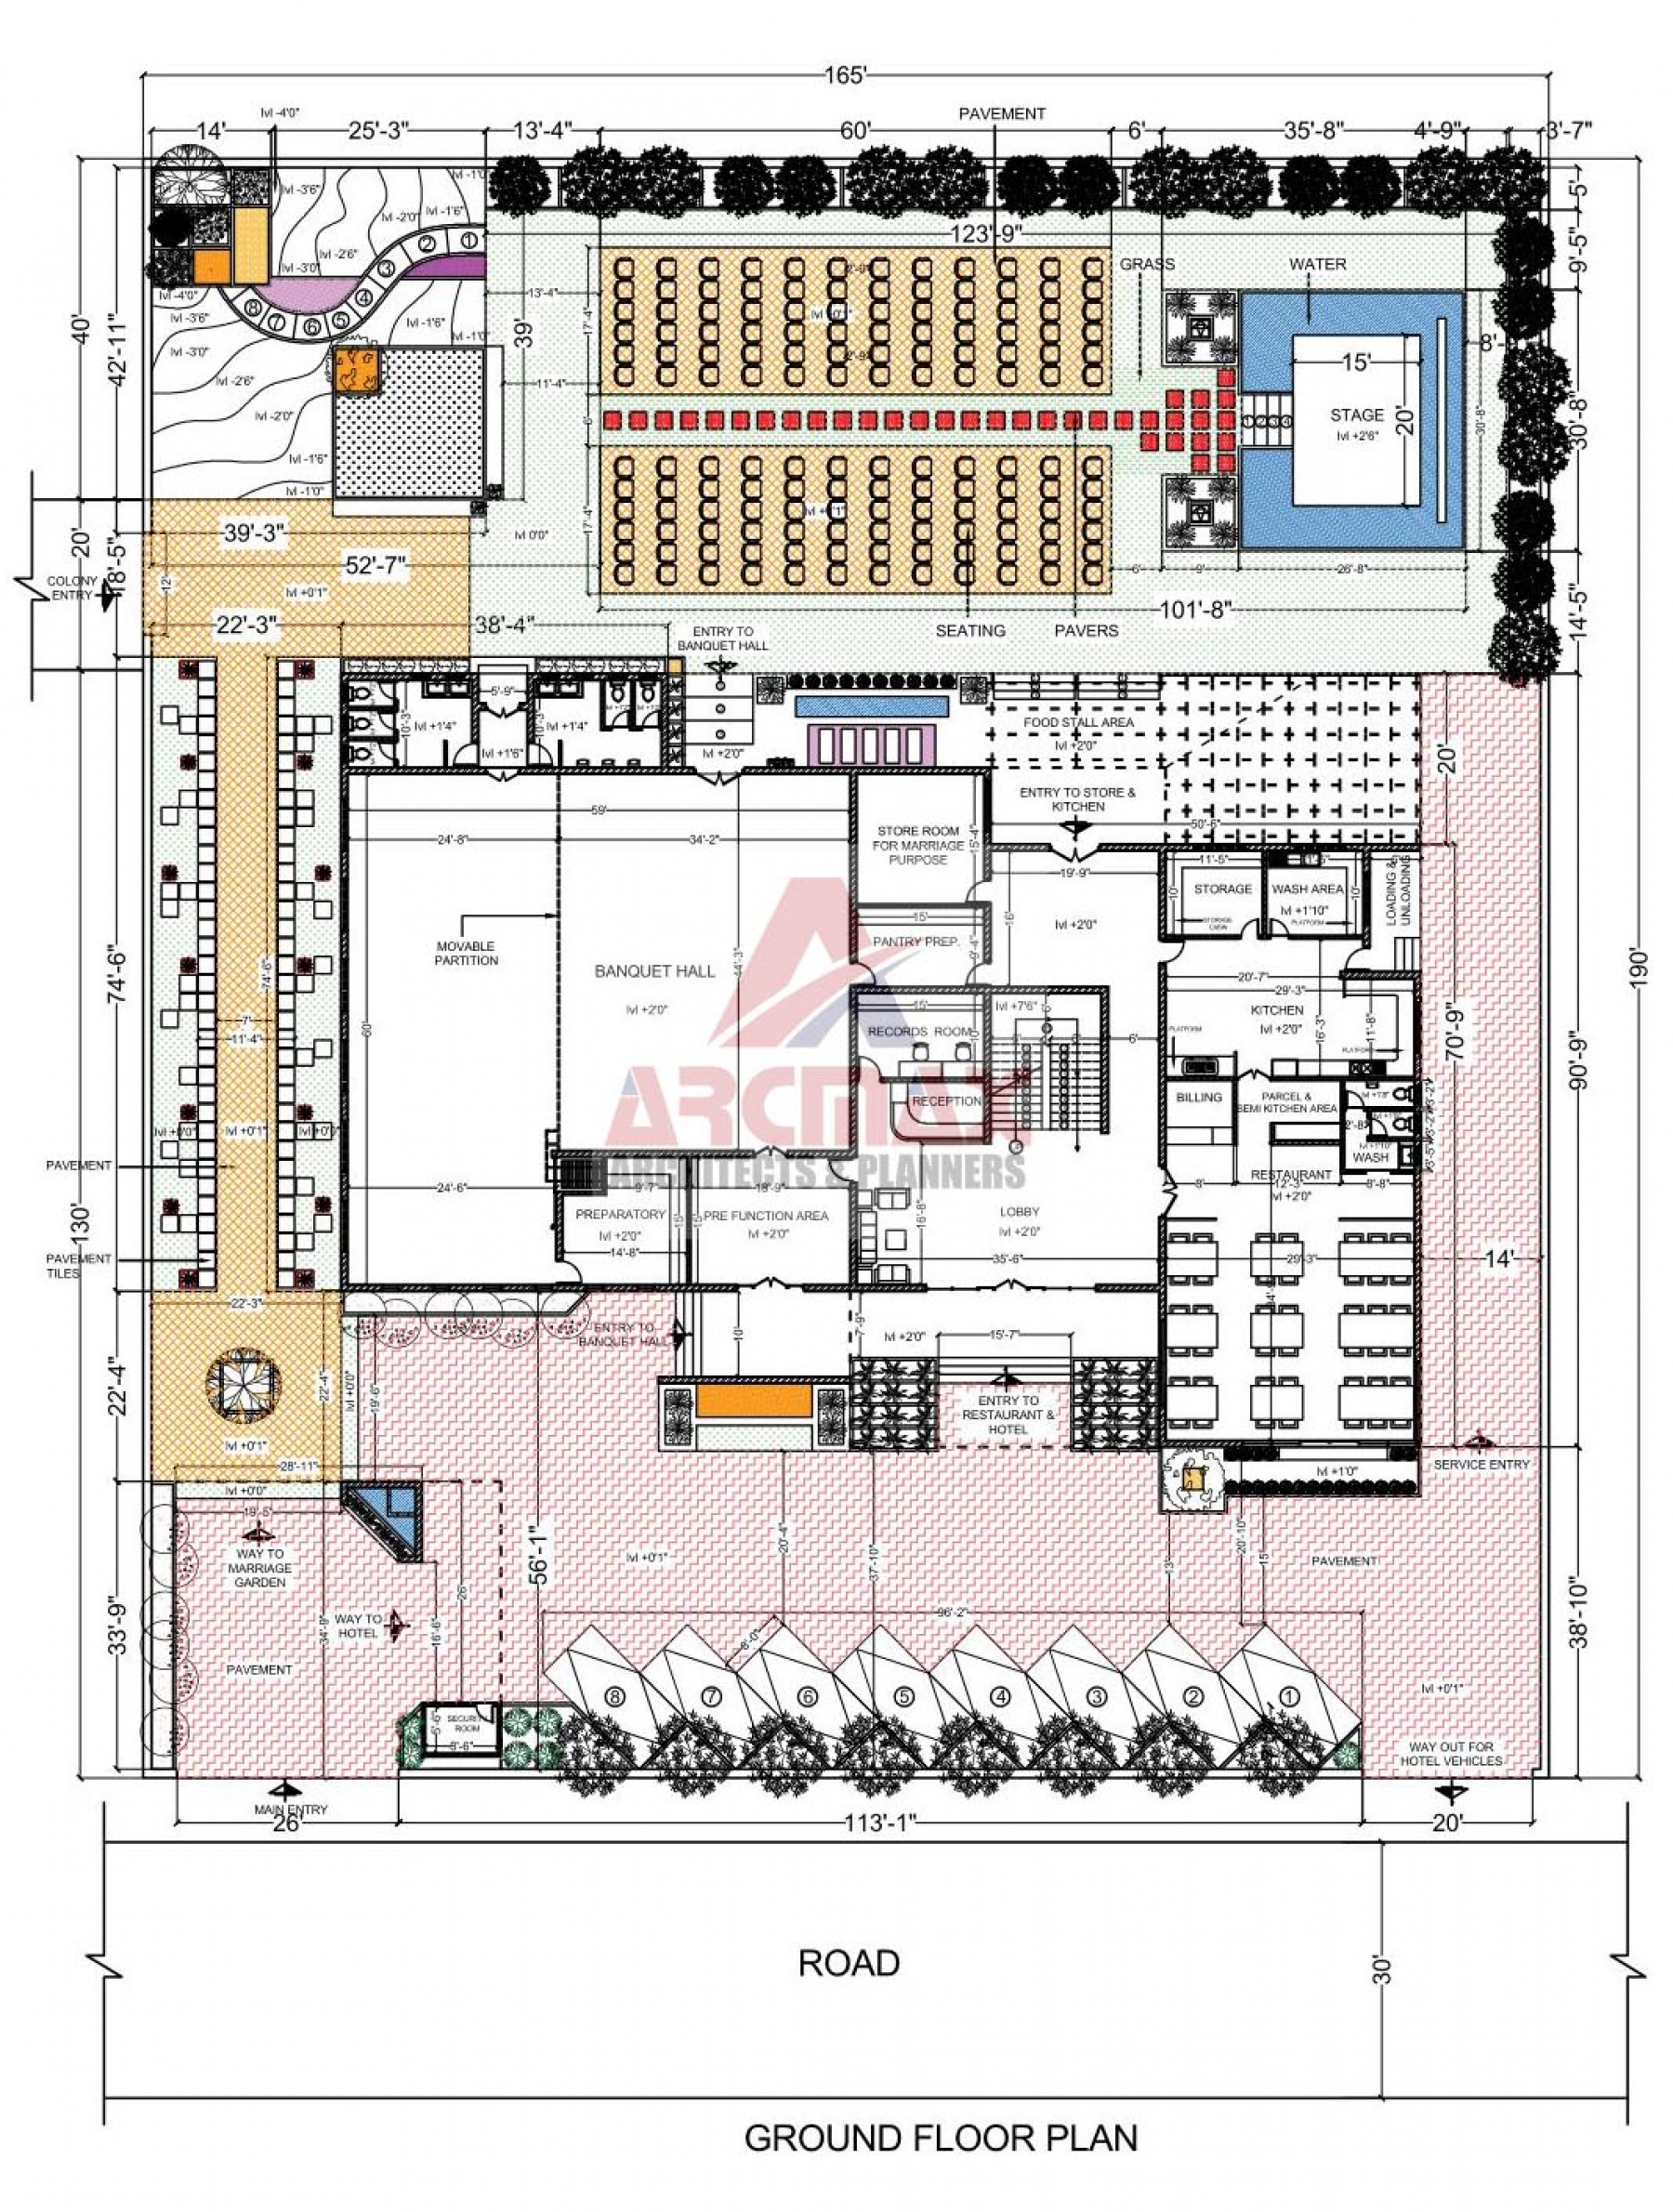 Buy Marriage Garden Design Plans Buy Marriage Garden